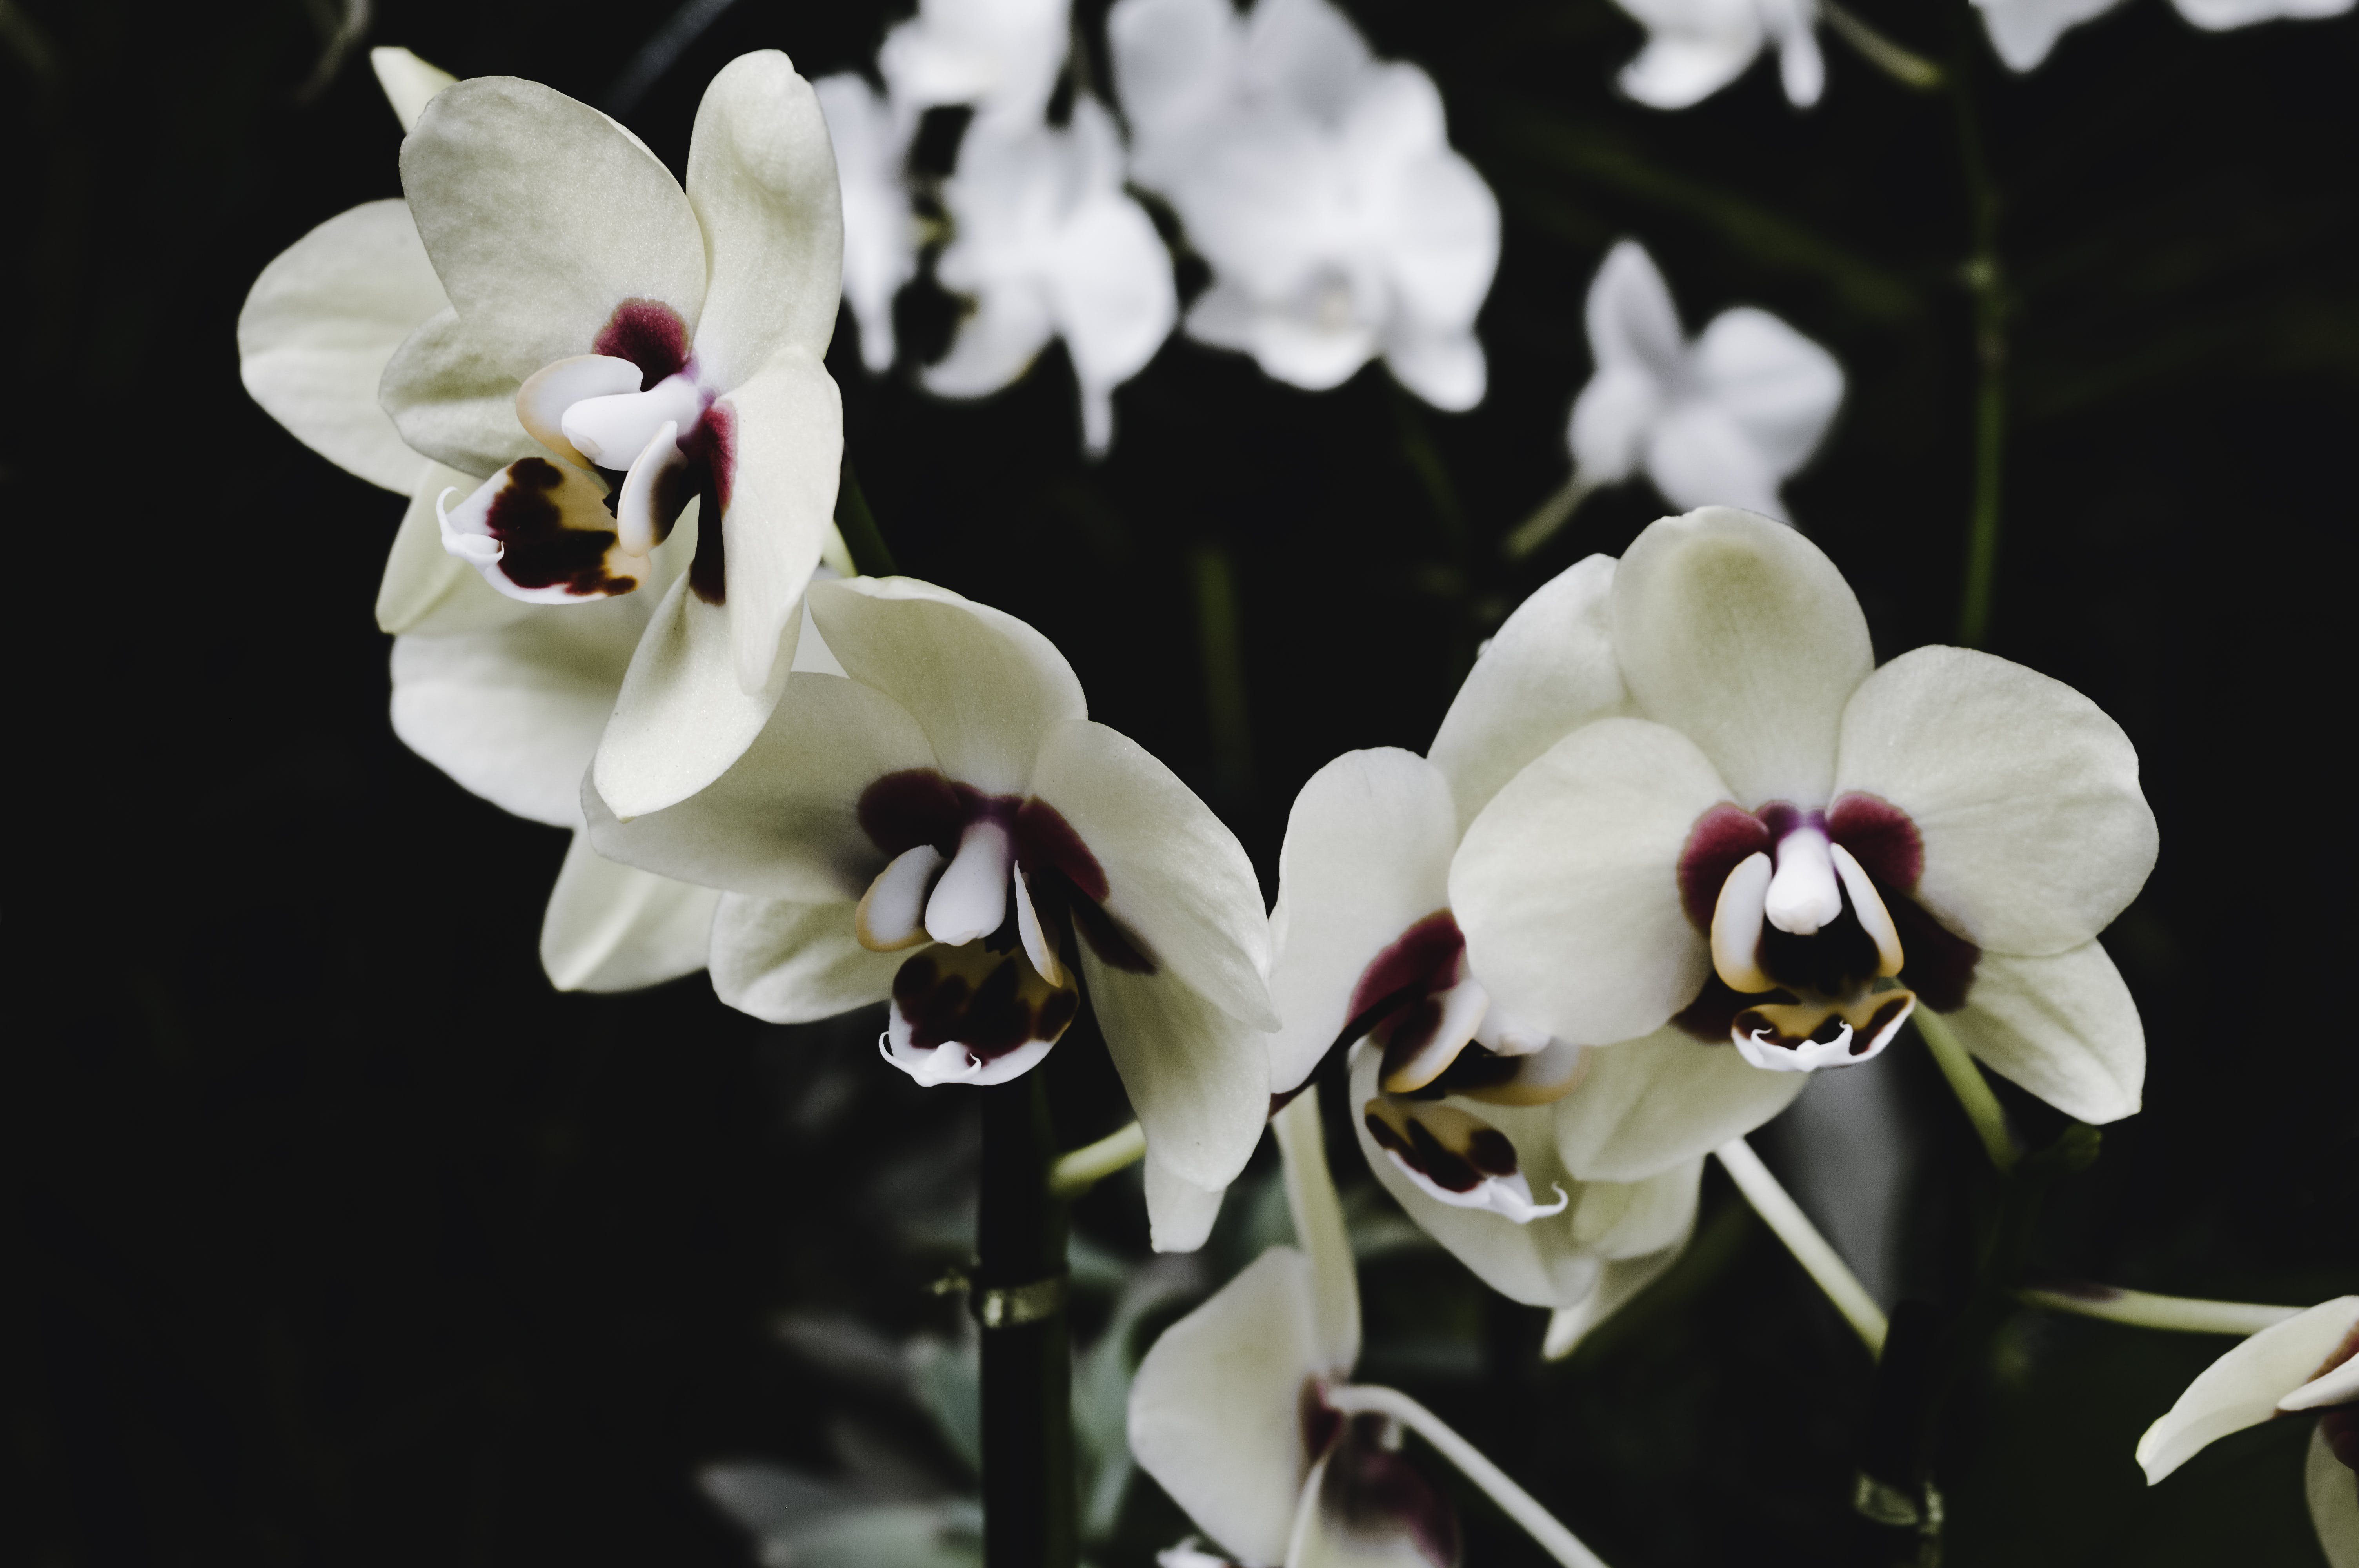 Free stock photo of beautiful flowers, flowers, orchids, spring